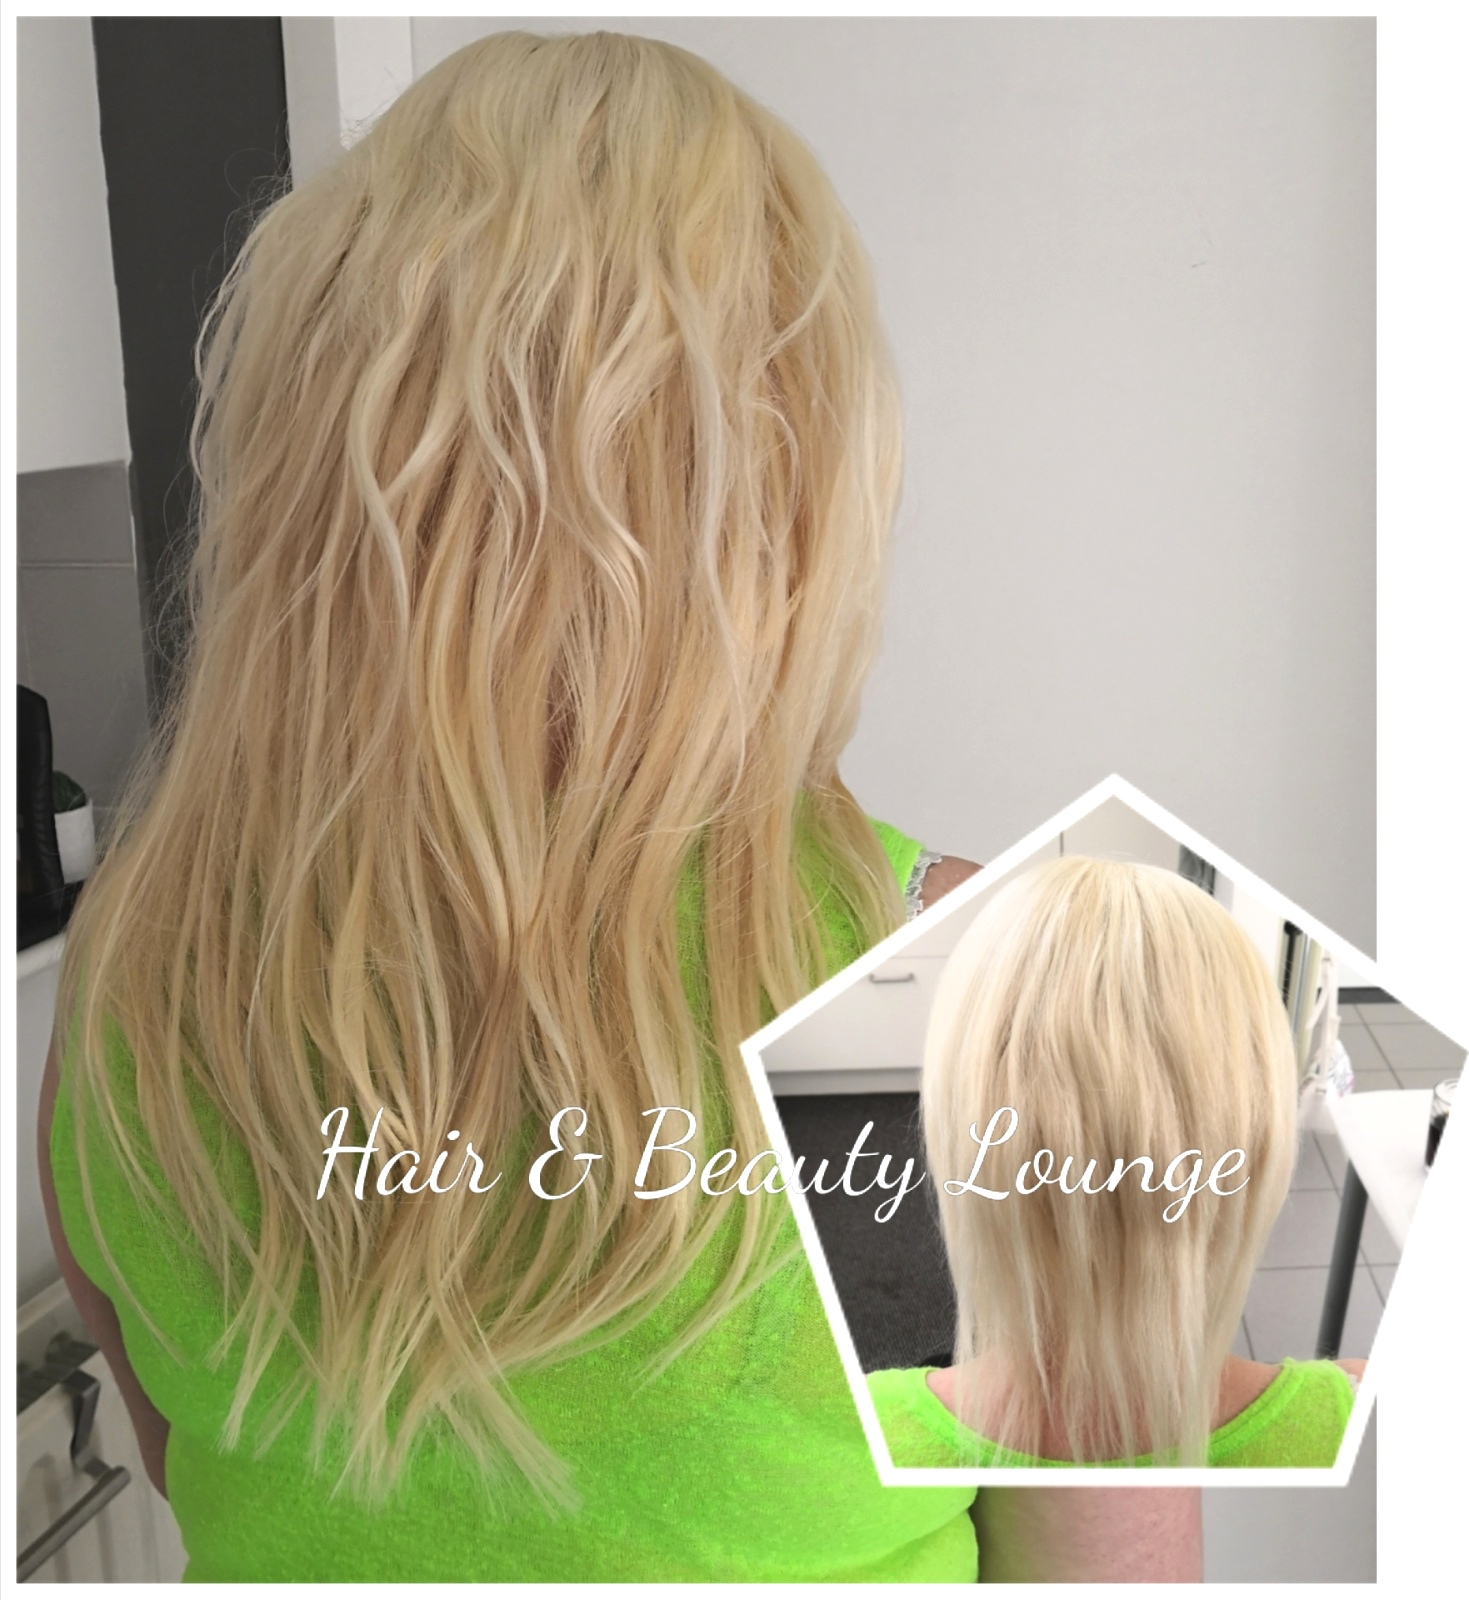 Hairextensions 08-08-2019